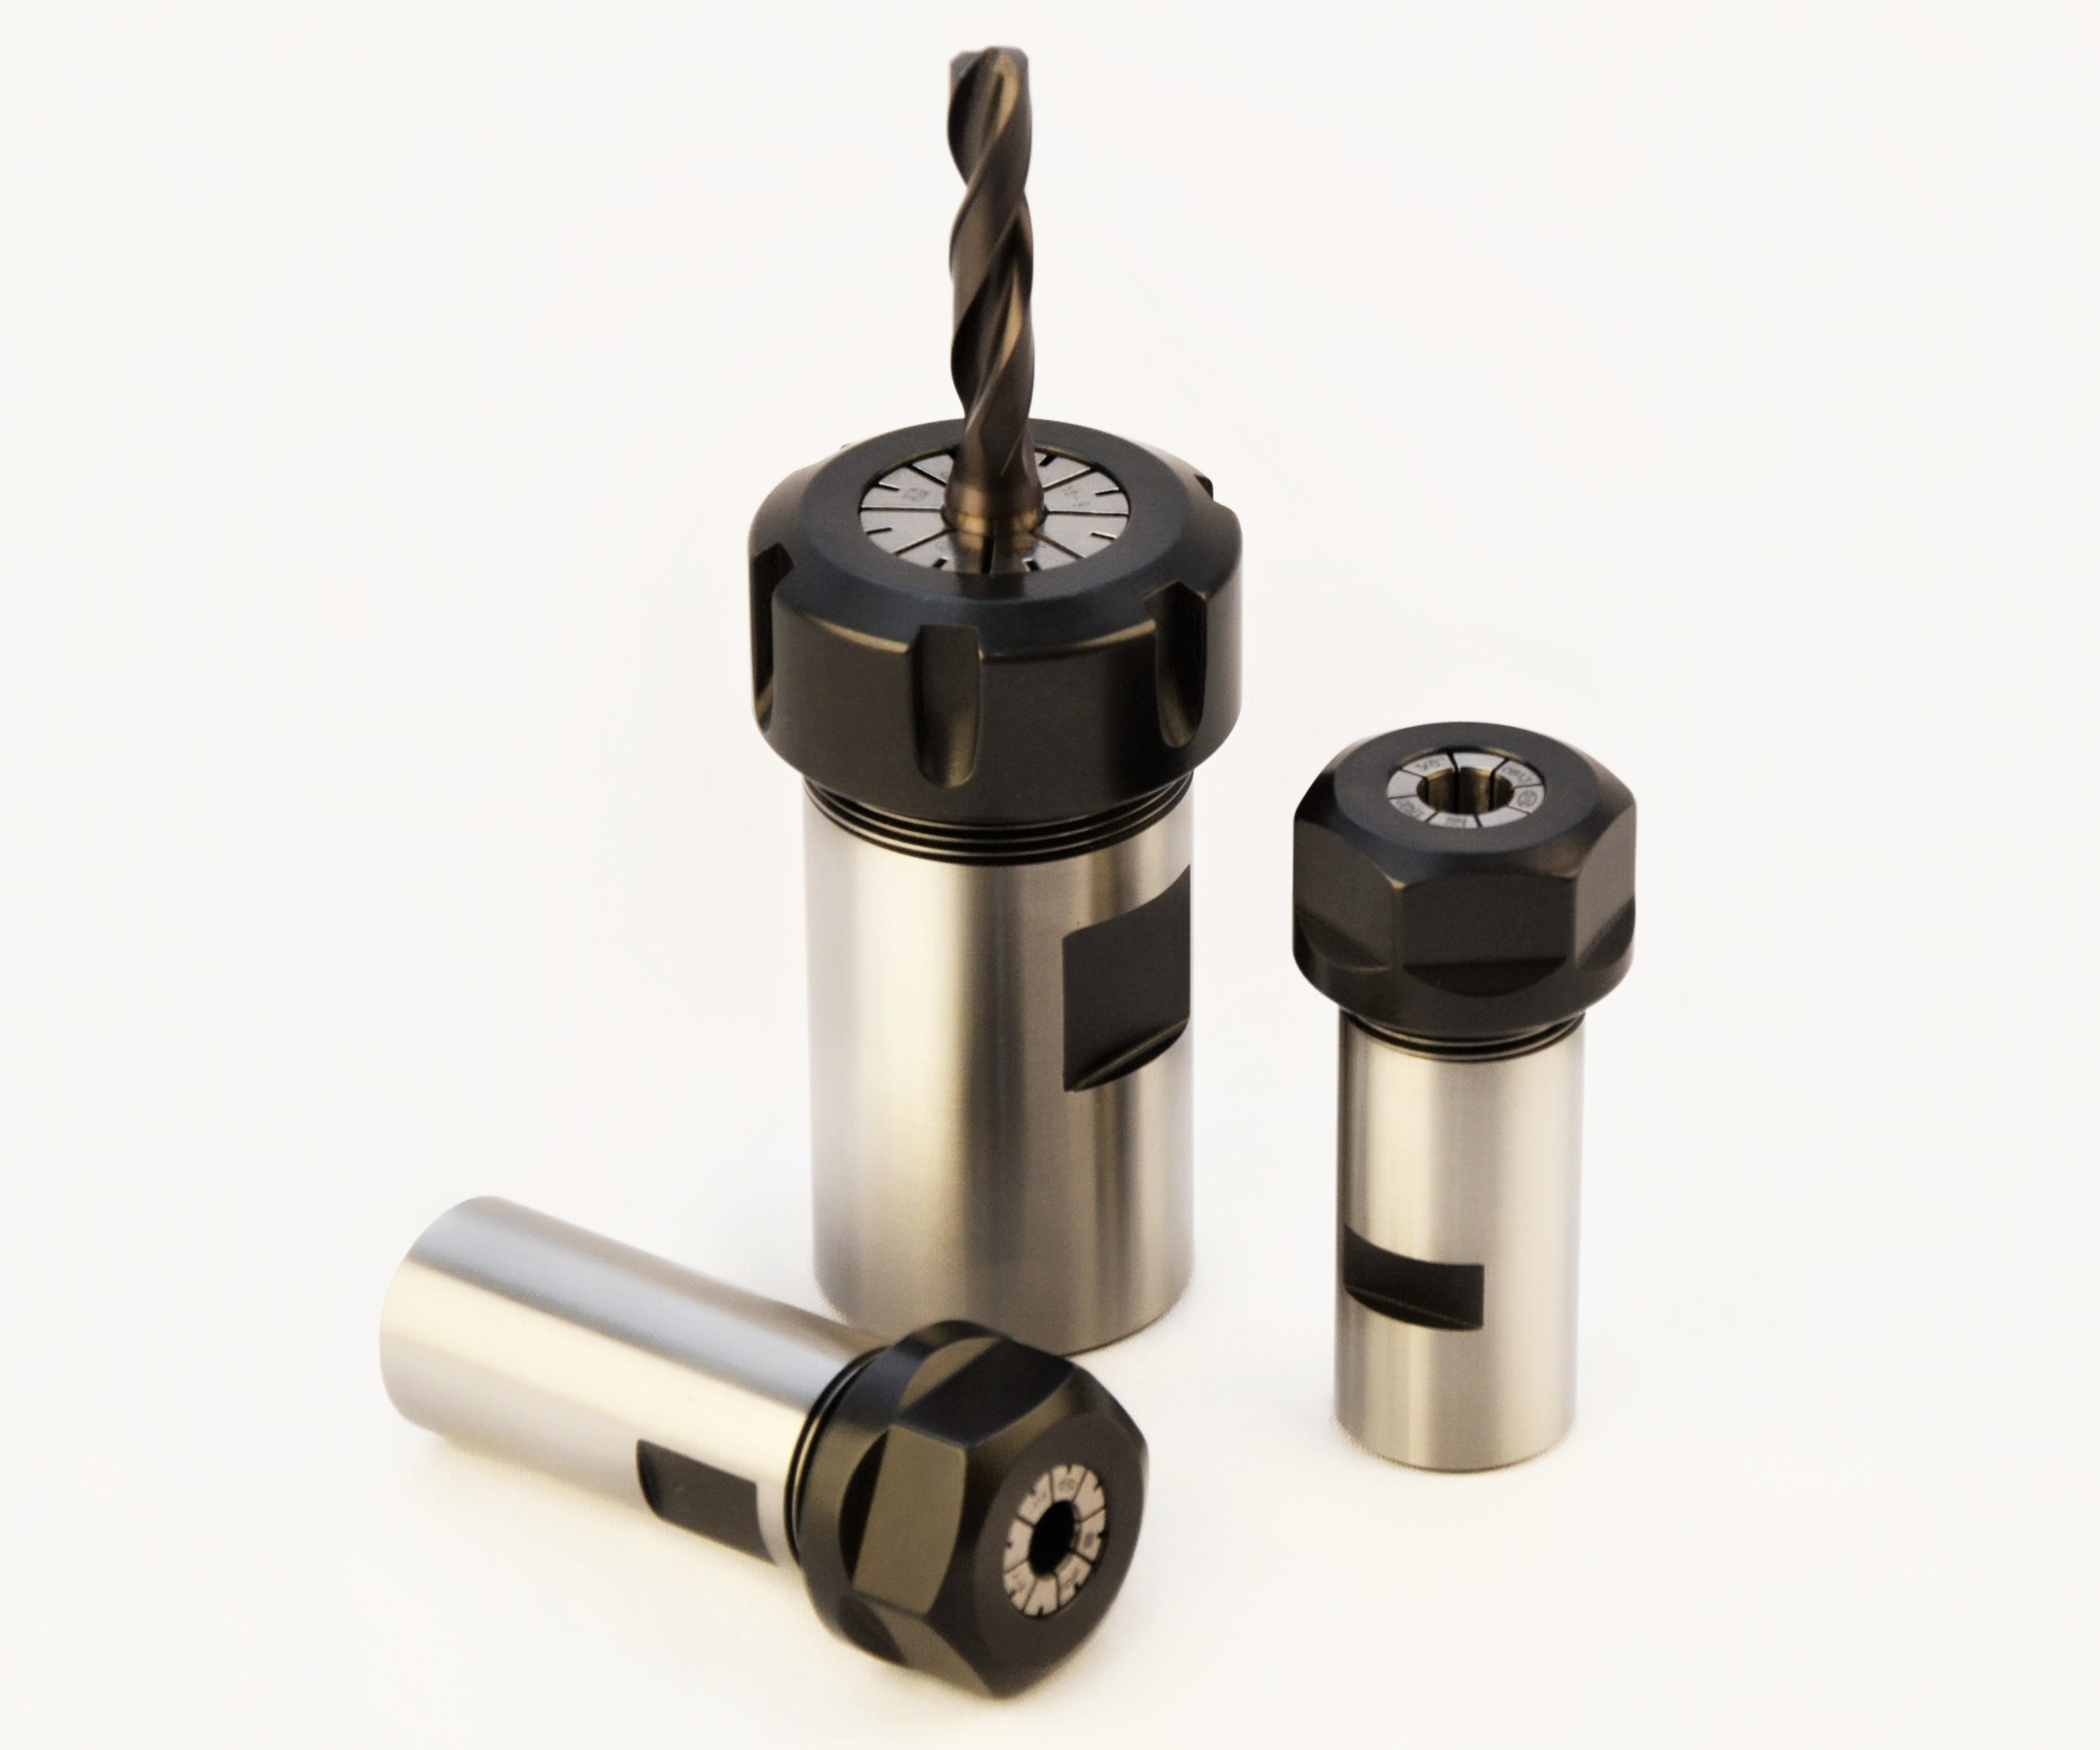 Jacobs taper rigid ER collet chucks from T.M. Smith Tool